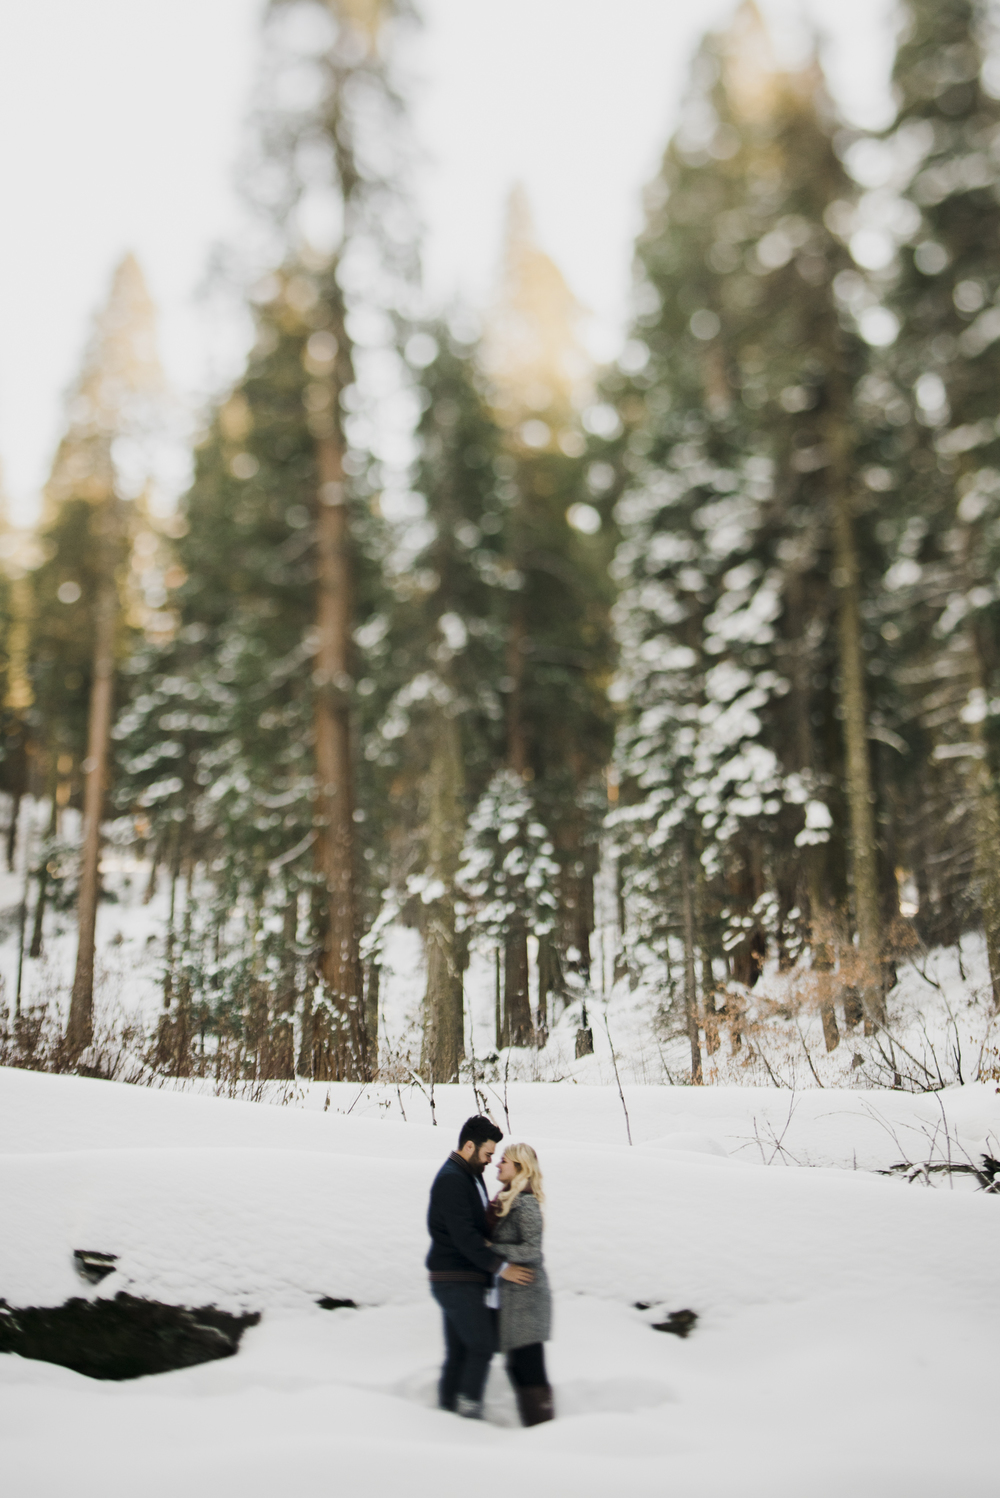 ©Isaiah-&-Taylor-Photography---George-&-Alyssa-Engagement---Sequoia-National-Park,-California-8.jpg